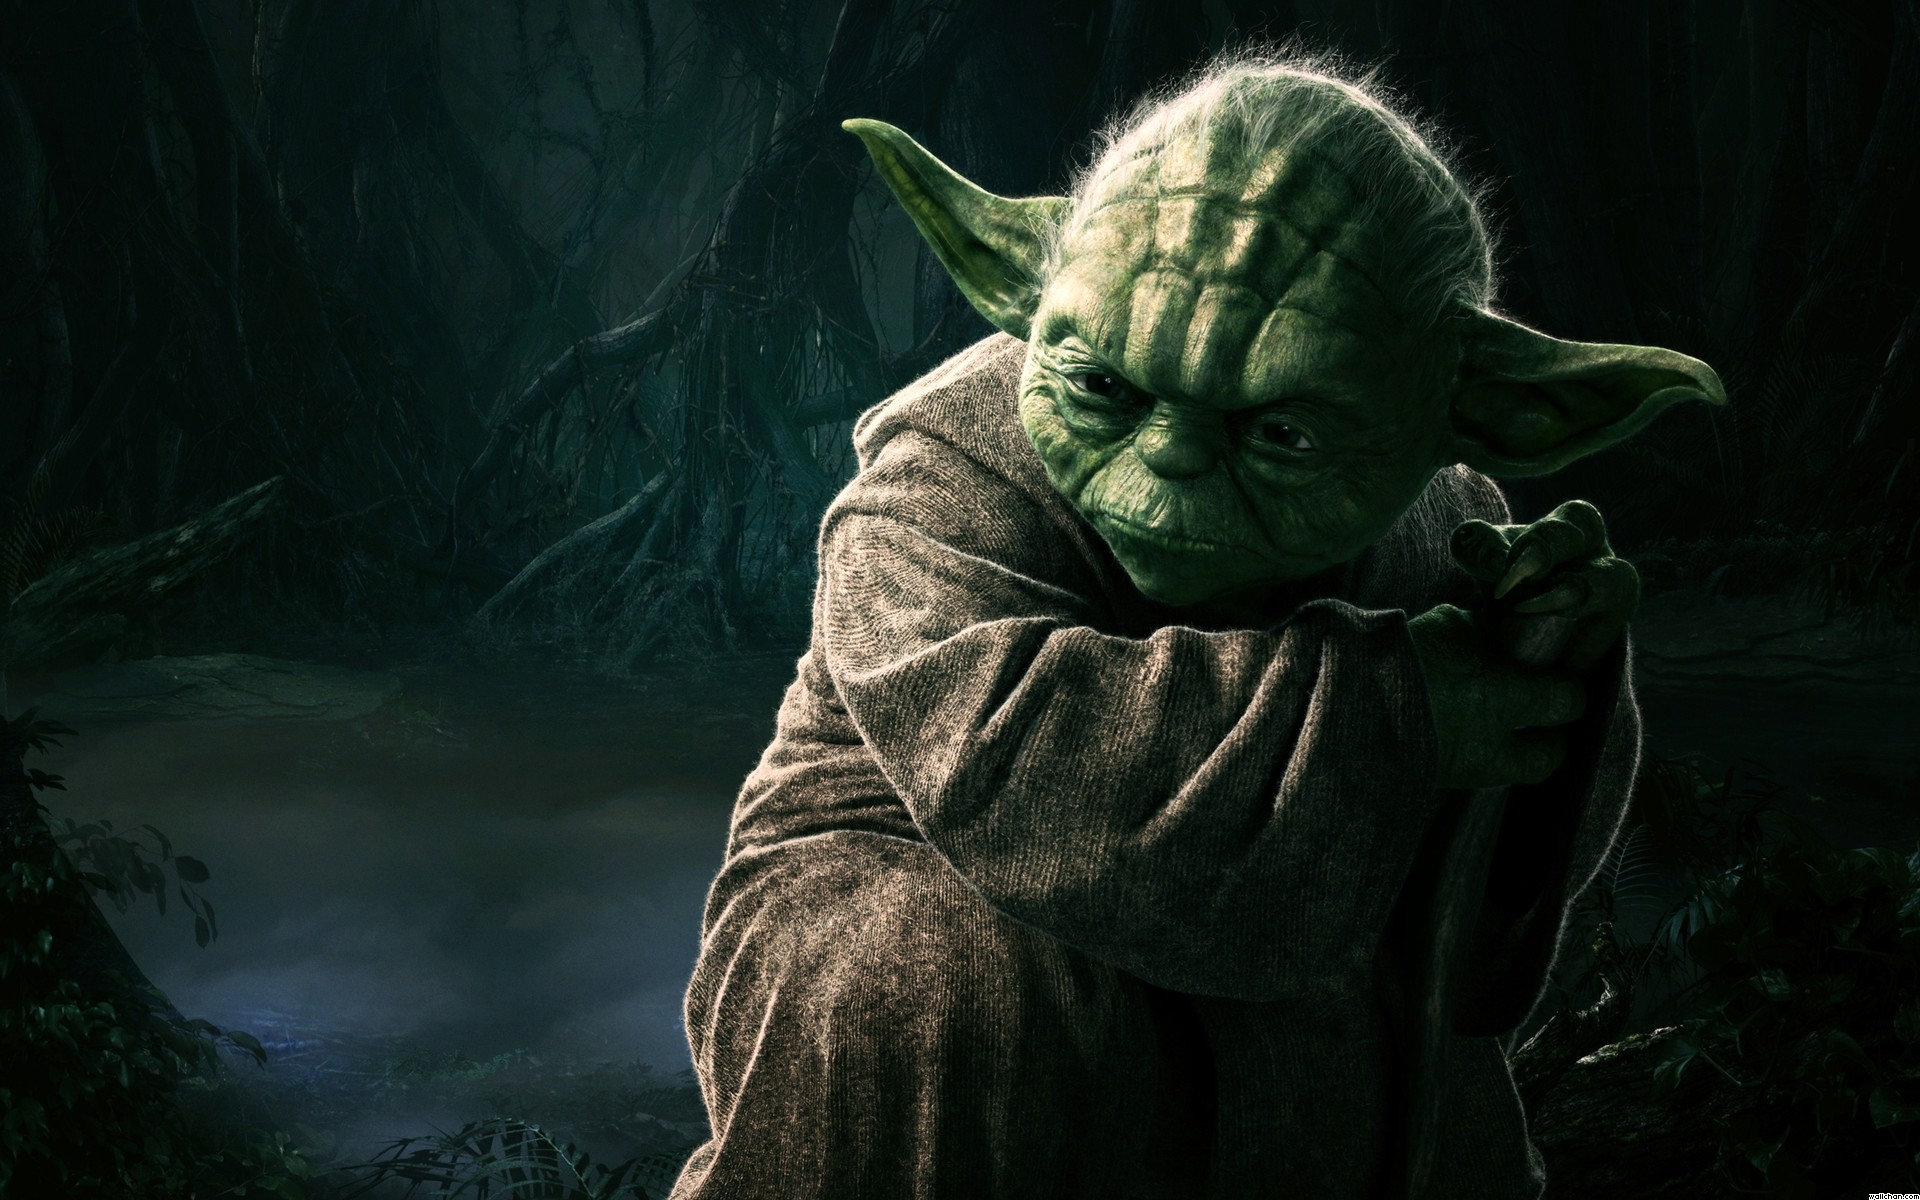 HD Wallpaper and background photos of Yoda Wallpaper for fans of Star Wars  images.